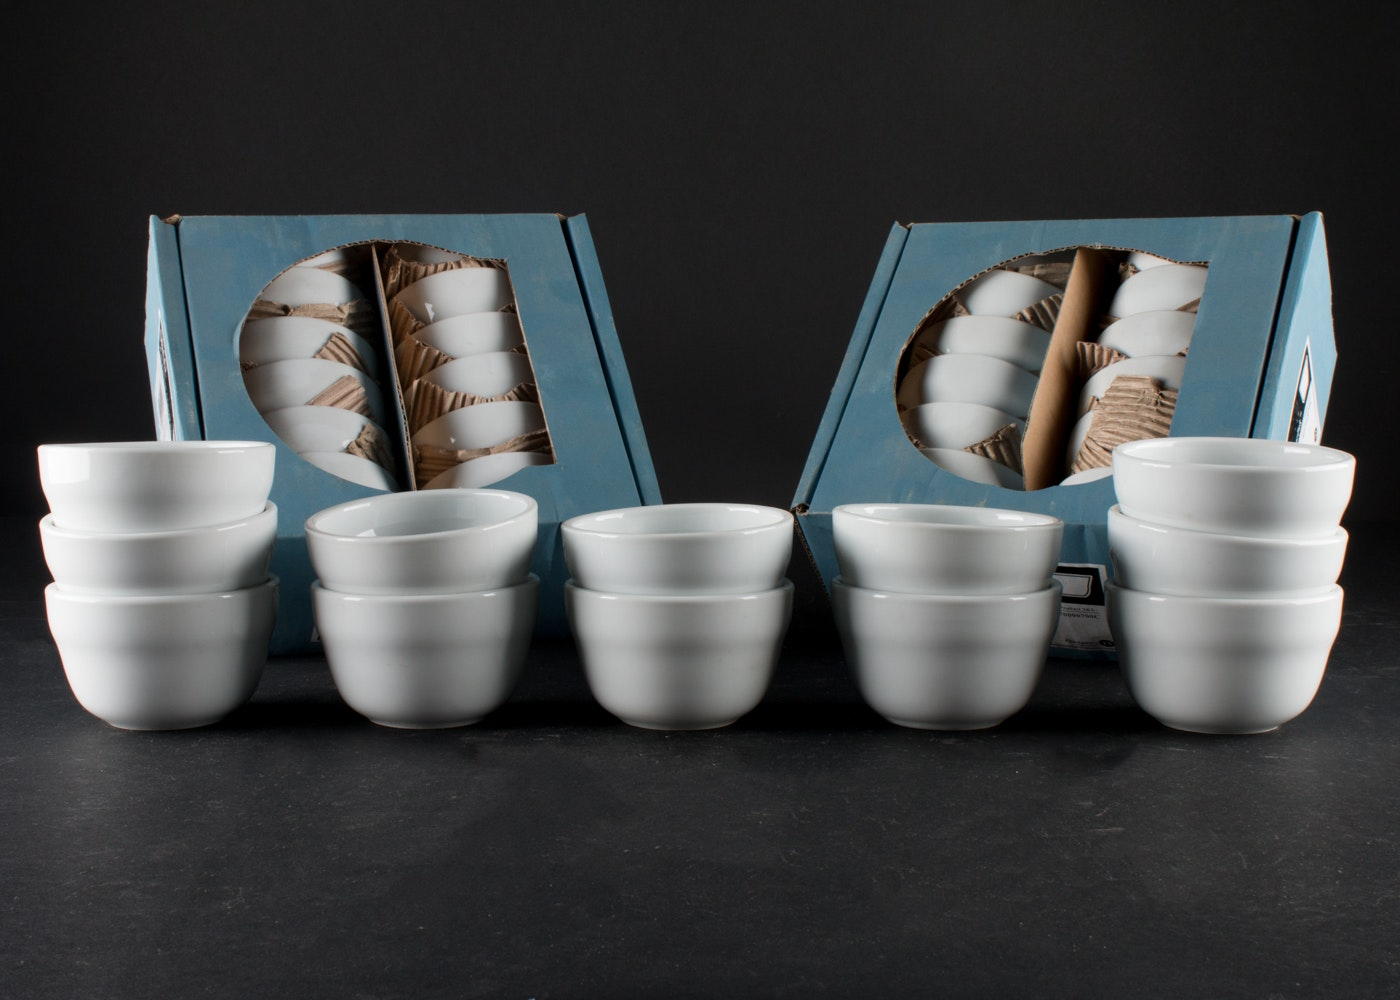 Generous Collection of Delco Ceramic Bowls ... & Generous Collection of Delco Ceramic Bowls : EBTH